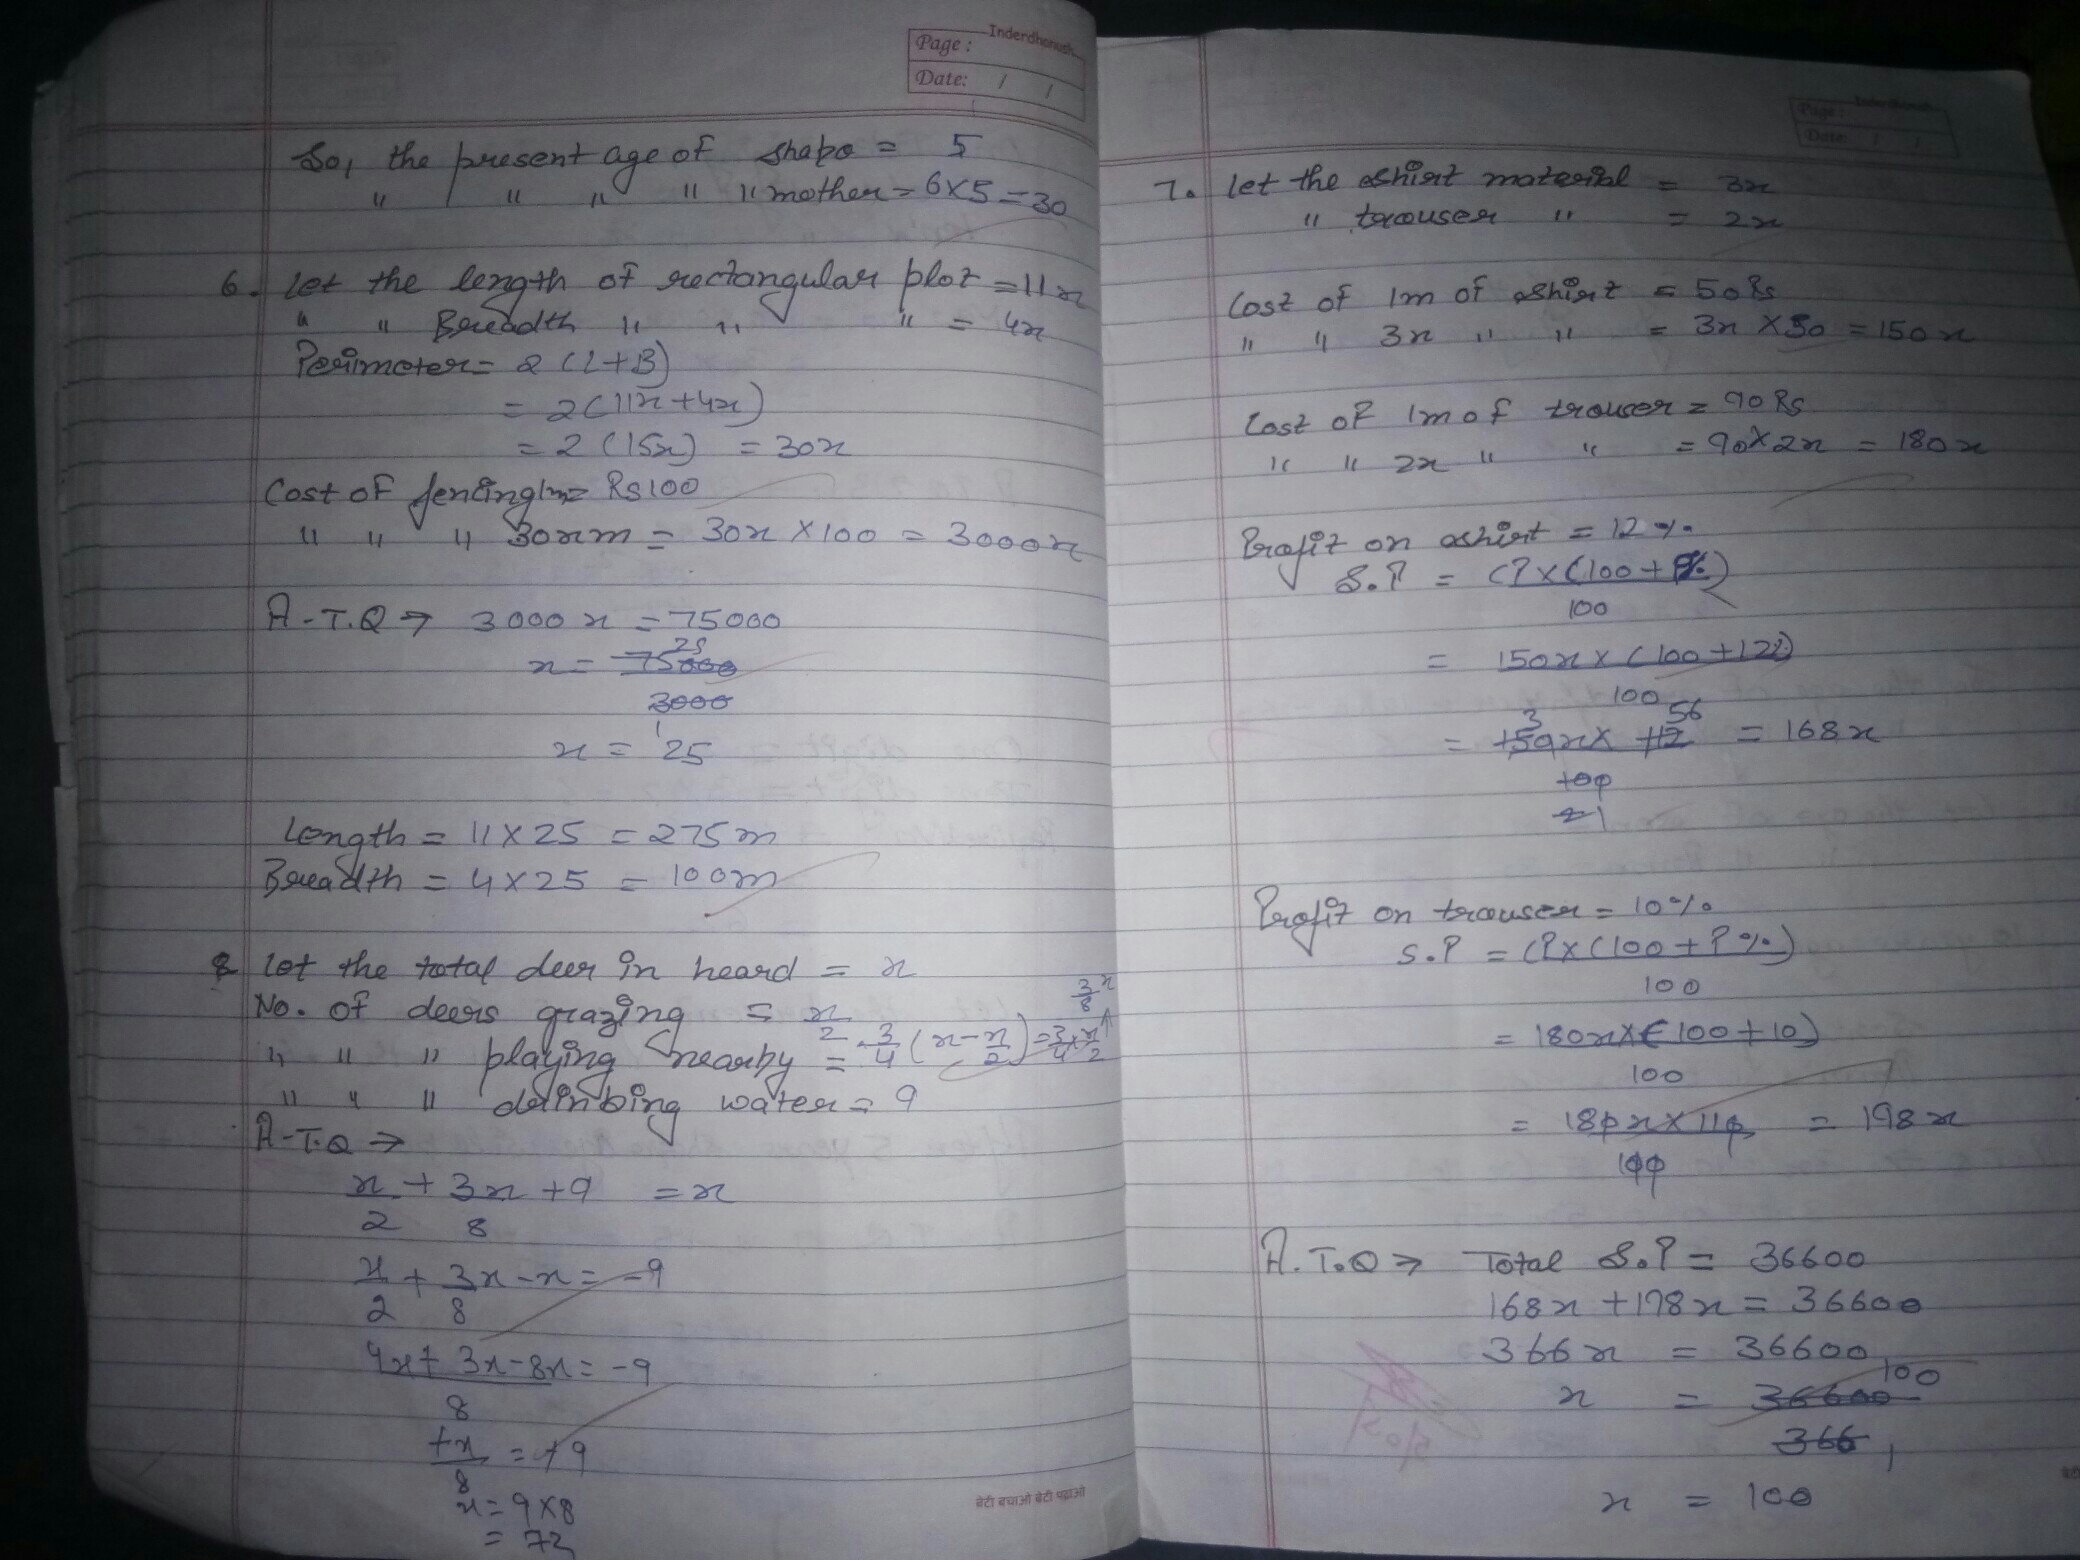 pls give me the ncert solution of class 8 maths ,chapter 2